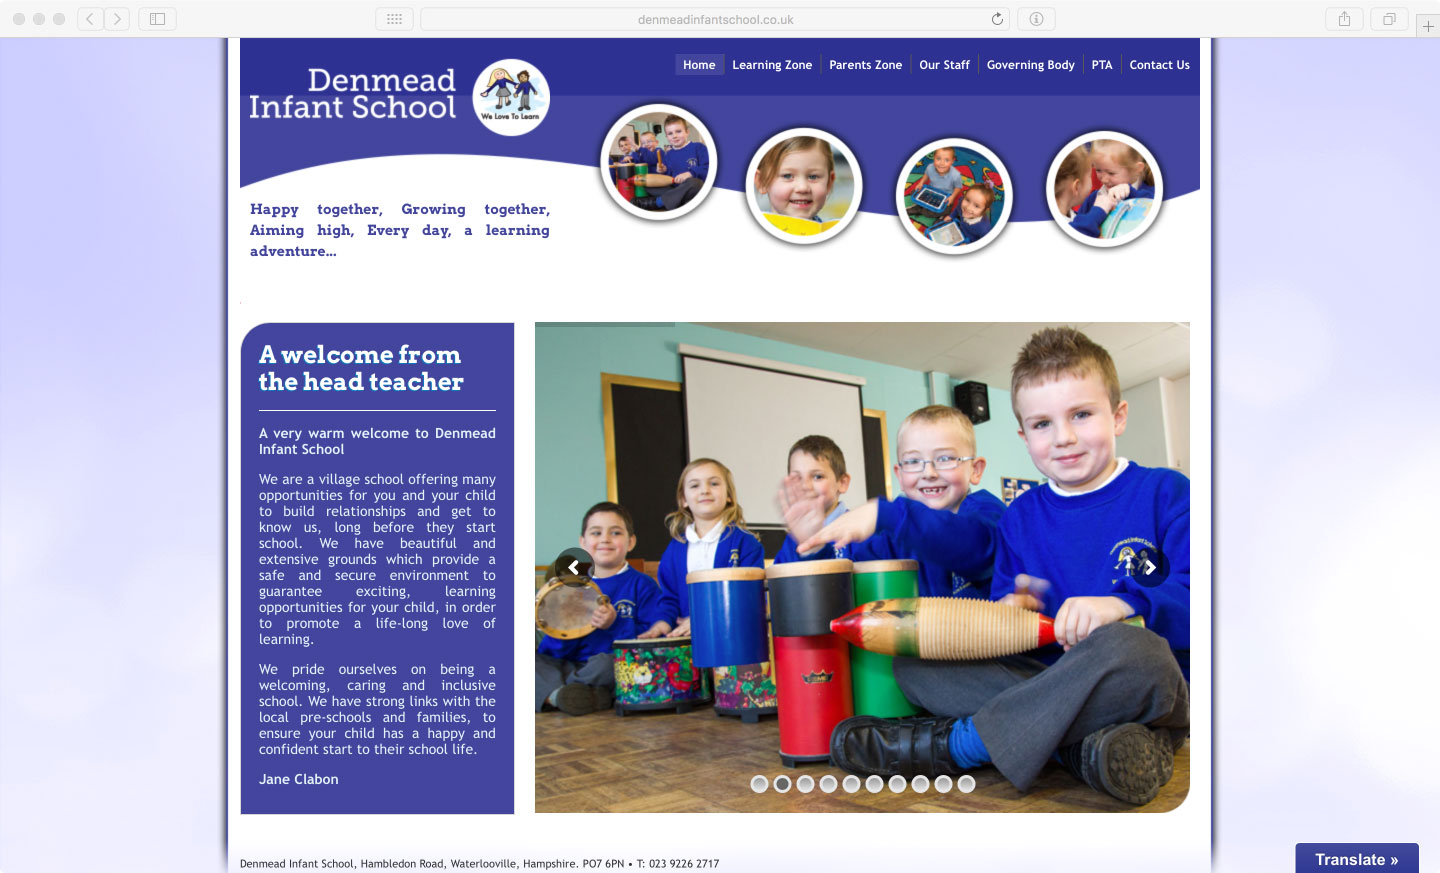 Denmead Infants School